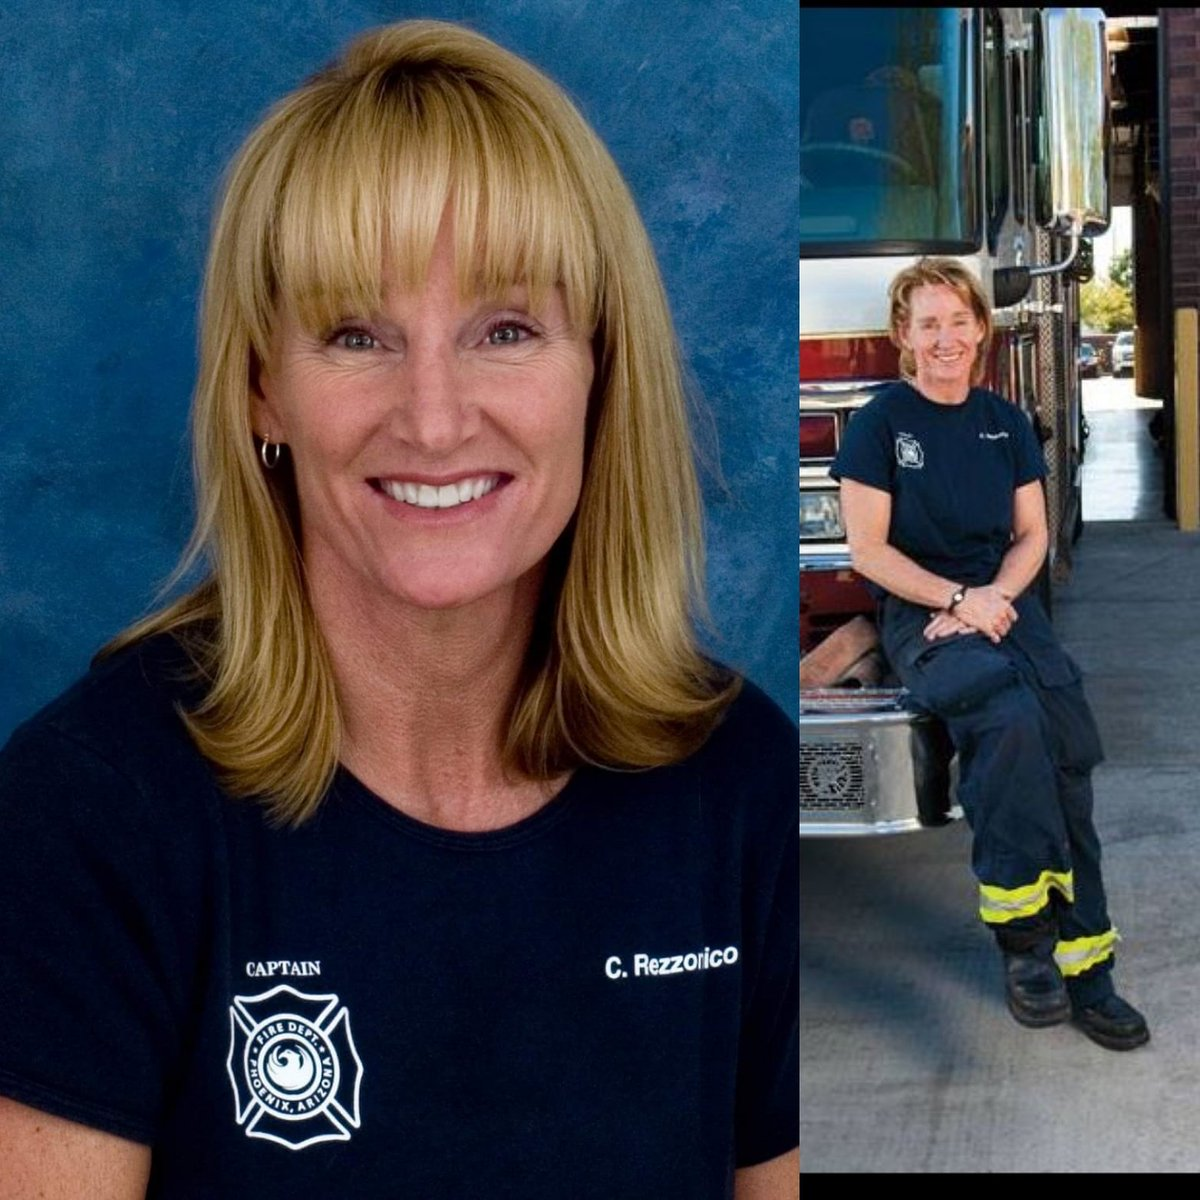 With deep sorrow we announce the passing of #PHXfire Cpt. Crystal Rezzonico on 2/18/17. R.I.P. Captain Rezzonico. https://t.co/2mctBlD7uO